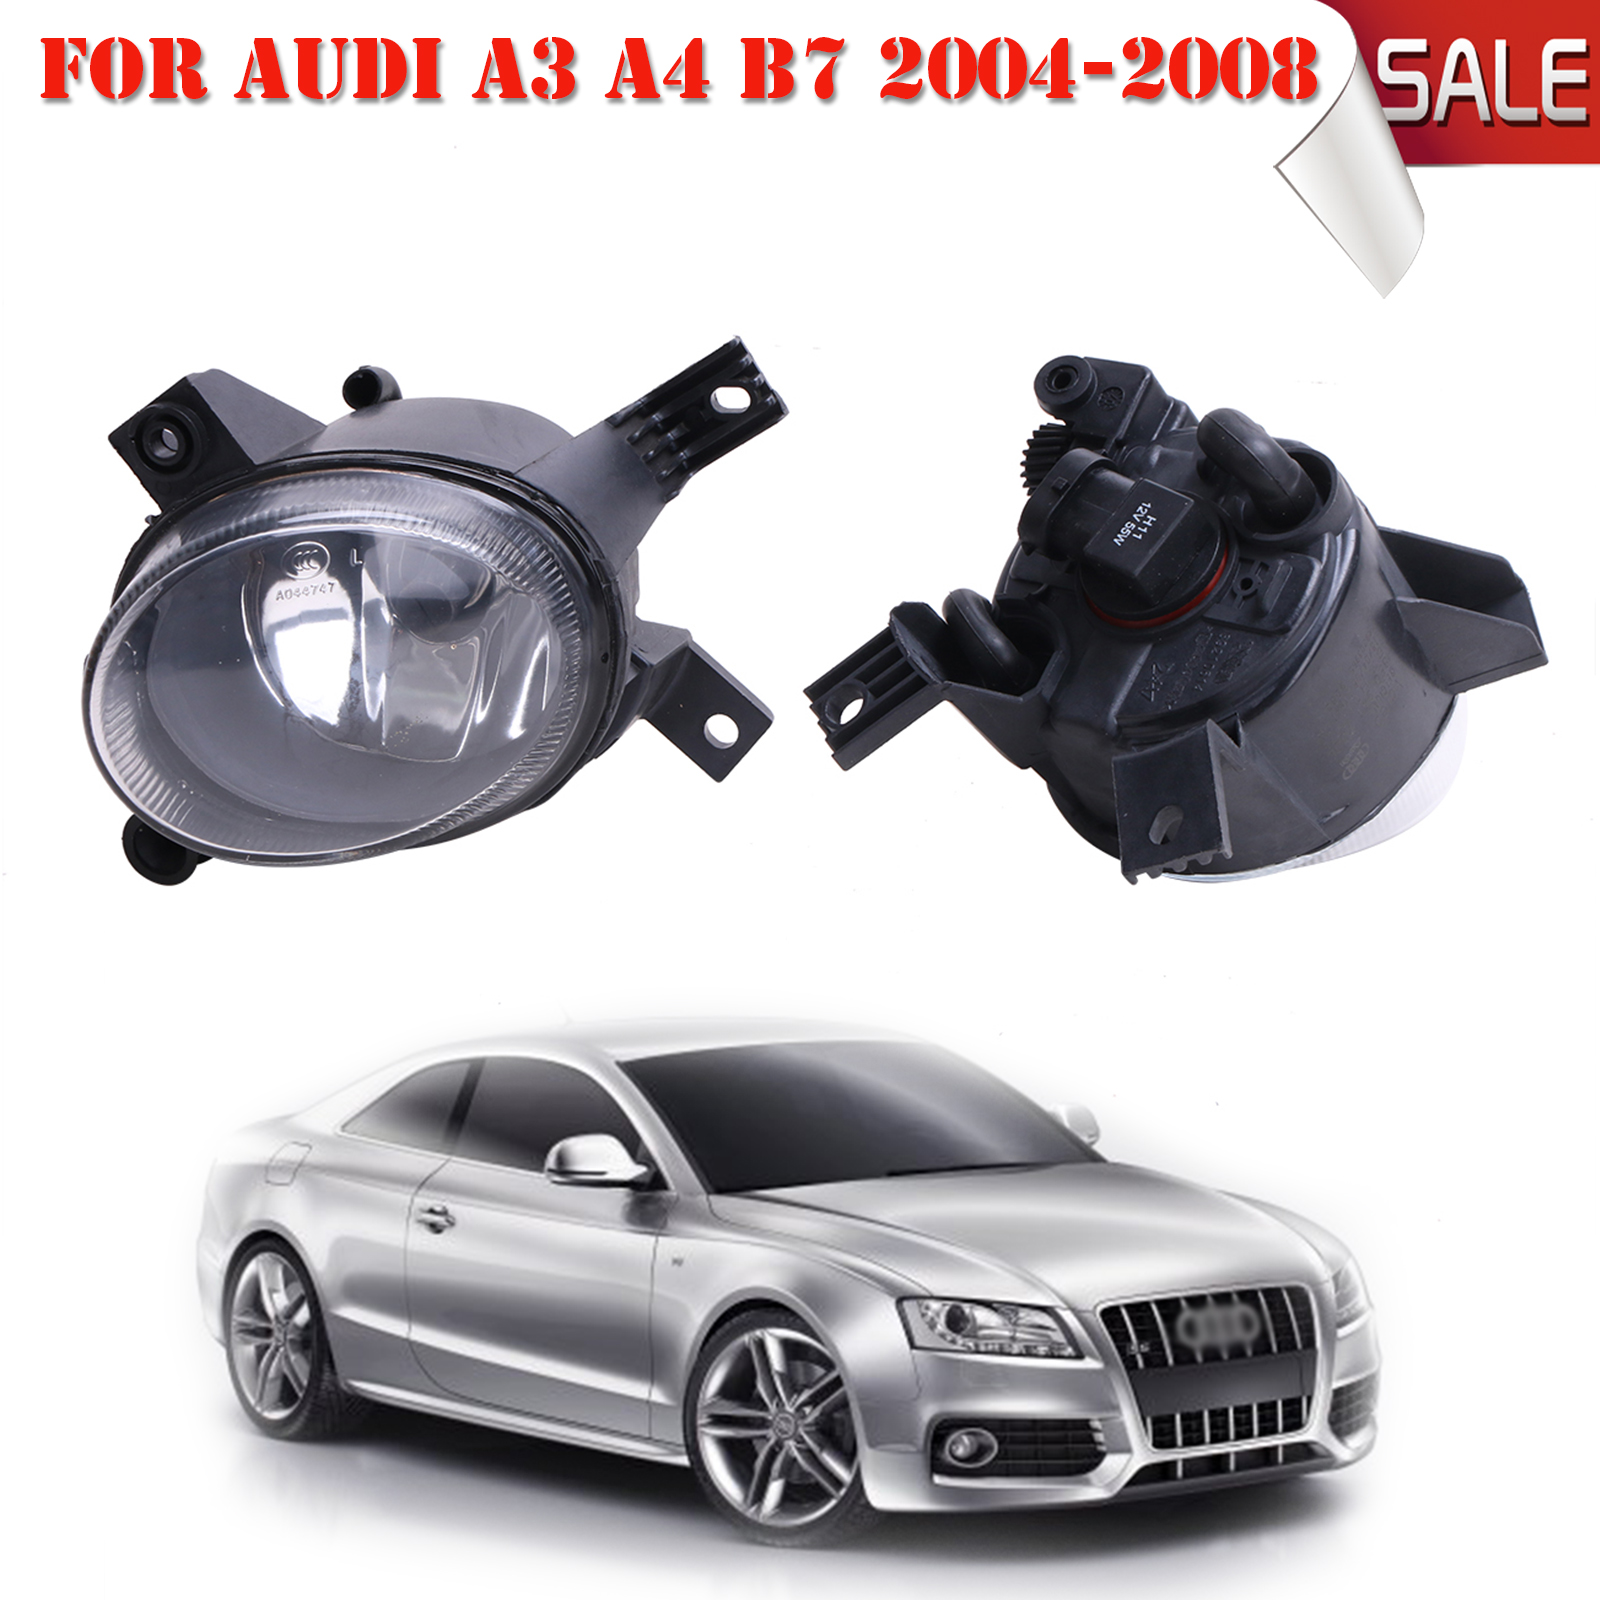 For Audi A4 B7 A3 2004-2008 Front Bumper Driving Fog Grill Lights Lamp Replaces 8E0941700 / 8E0941699 #P318 pair car 55w h11 front bumper driving fog light lamp for audi a4 b6 sedan 02 05 03 04